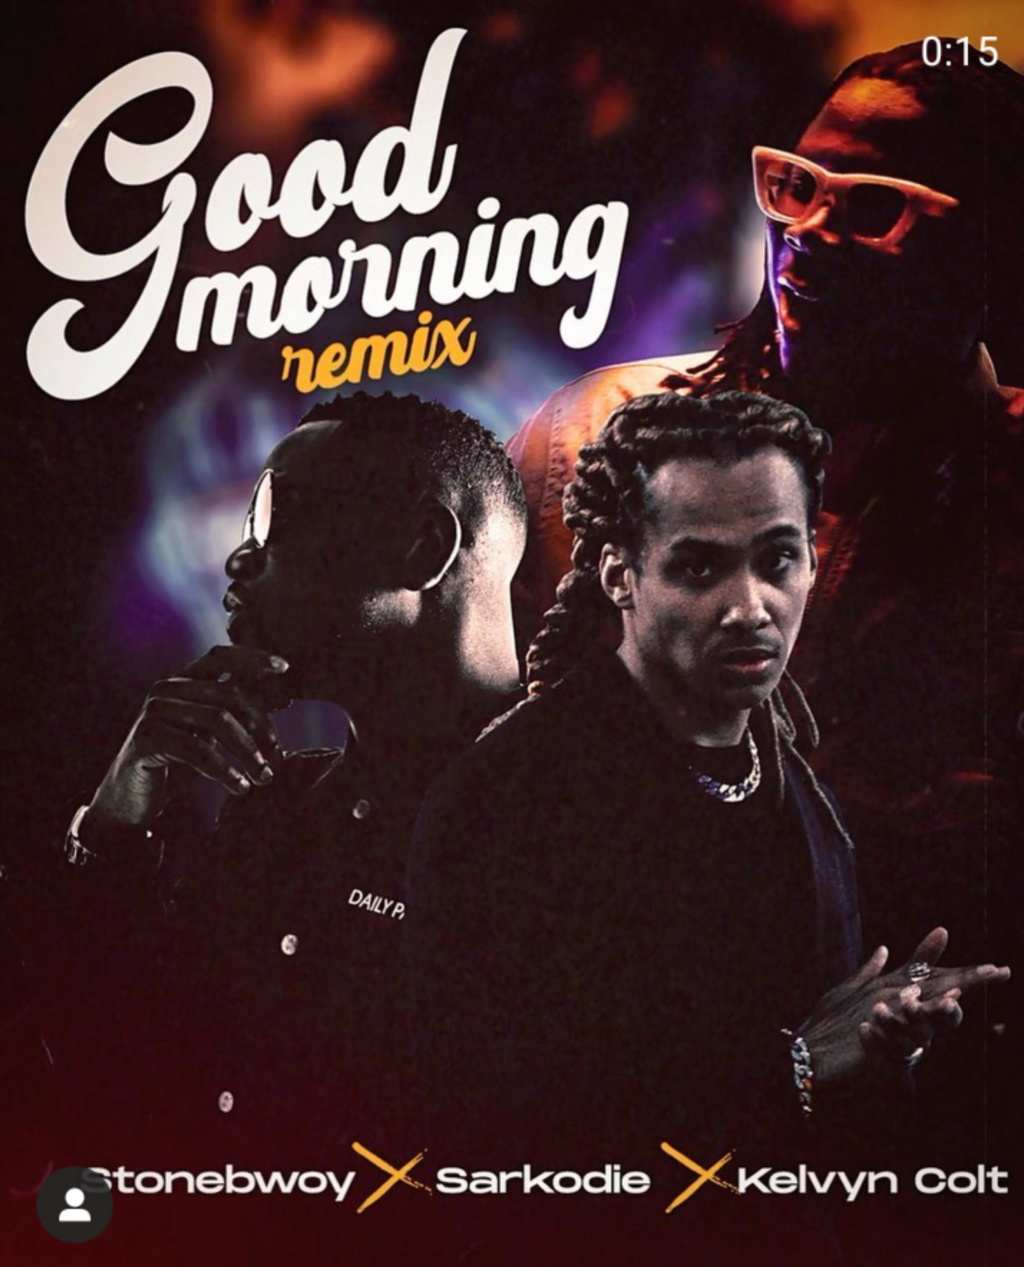 [Music] Stonebwoy – Good Morning (Remix) feat. Sarkodie & Kelvyn Colt | Mp3 Insho391